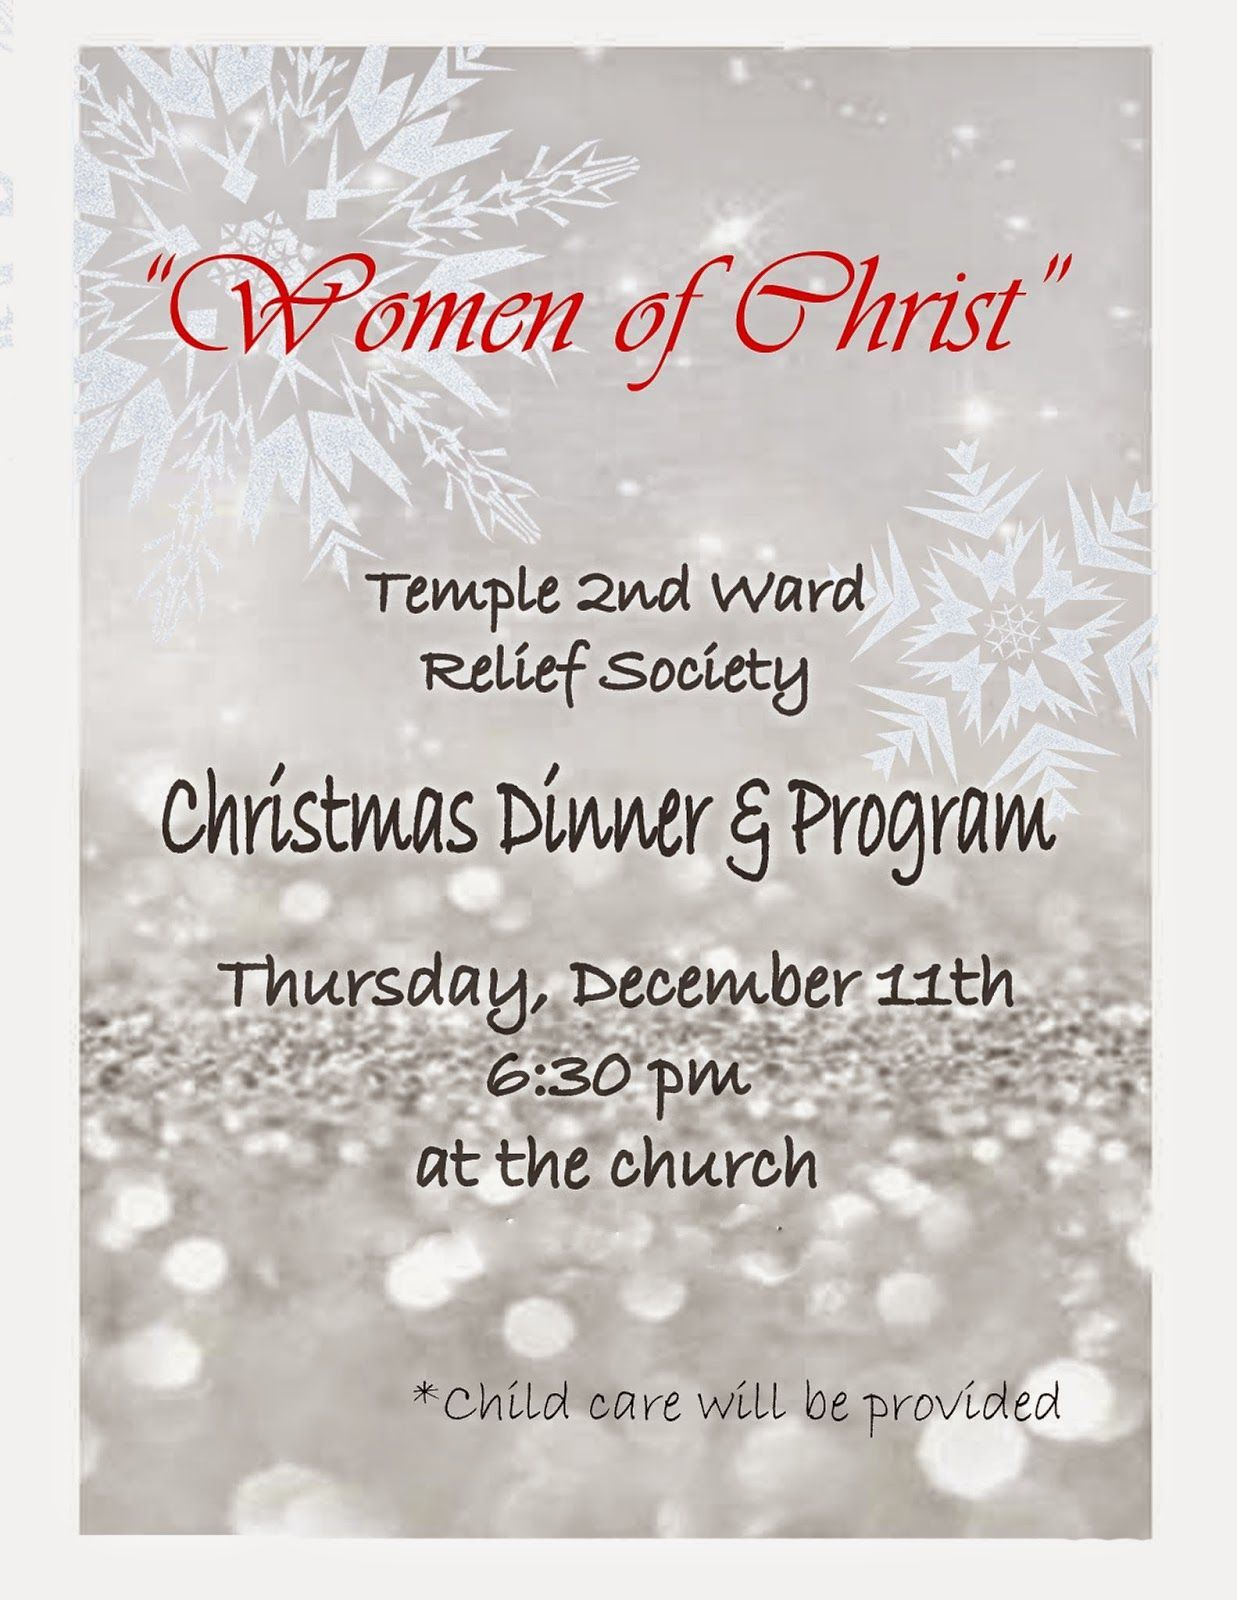 Attractive Lds Ward Christmas Party Program Ideas Part - 8: FRelief Society Sisters Of The Temple Ward Relief Society: Relief Society Christmas  Program And Dinner- December 11